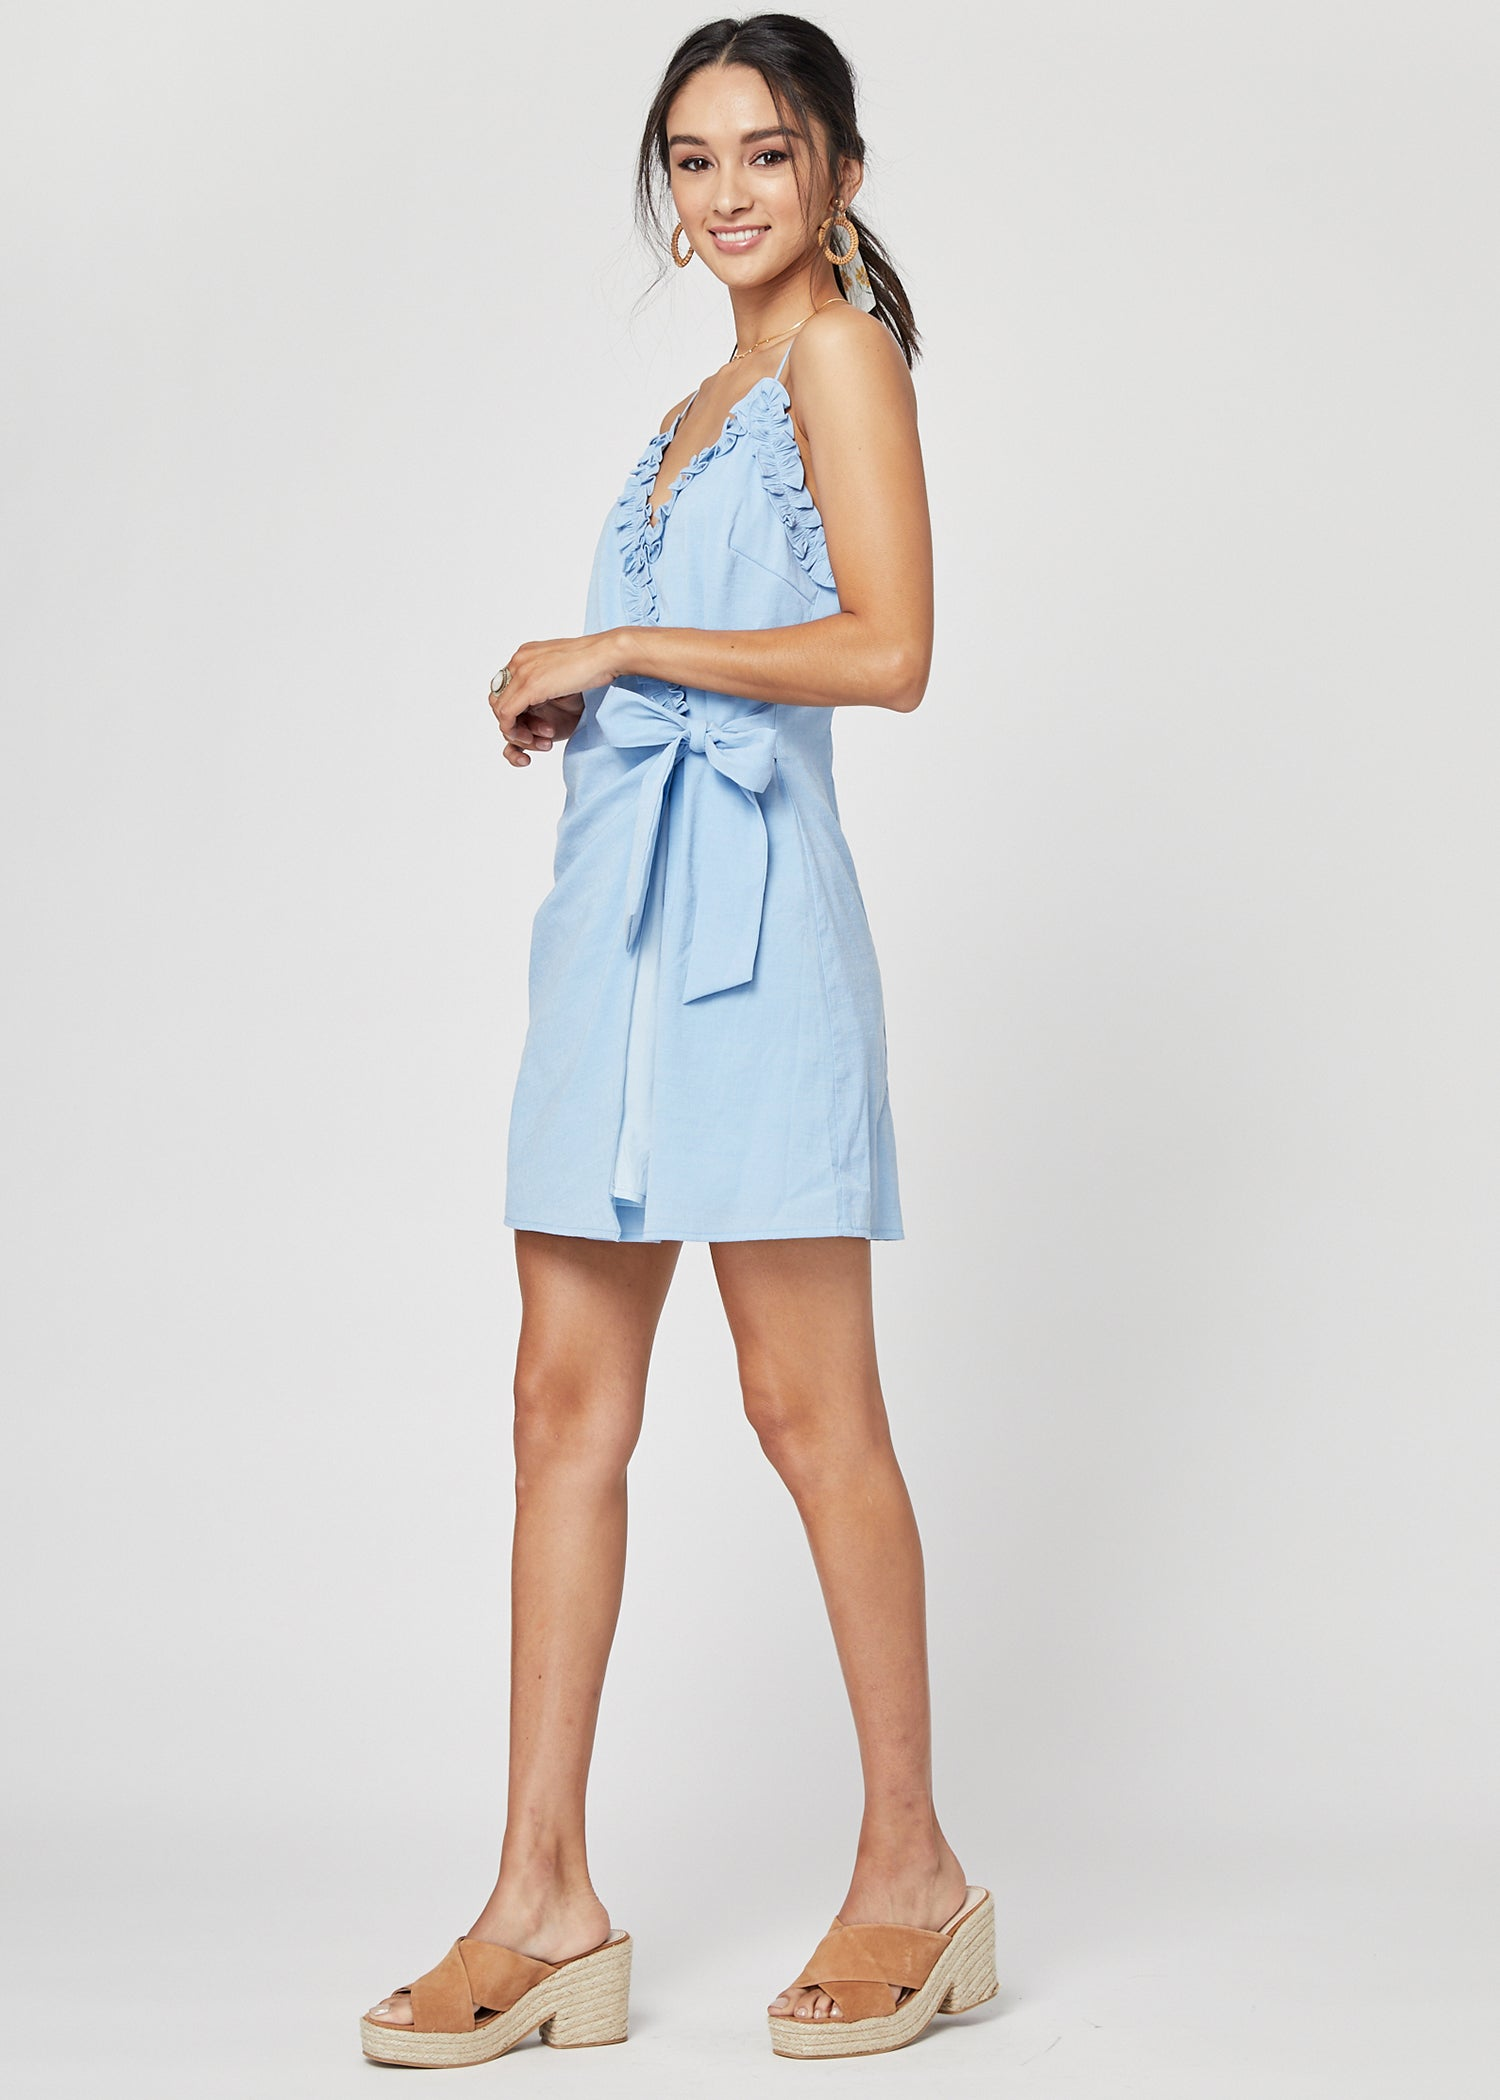 Bella Ruffle Mini Dress